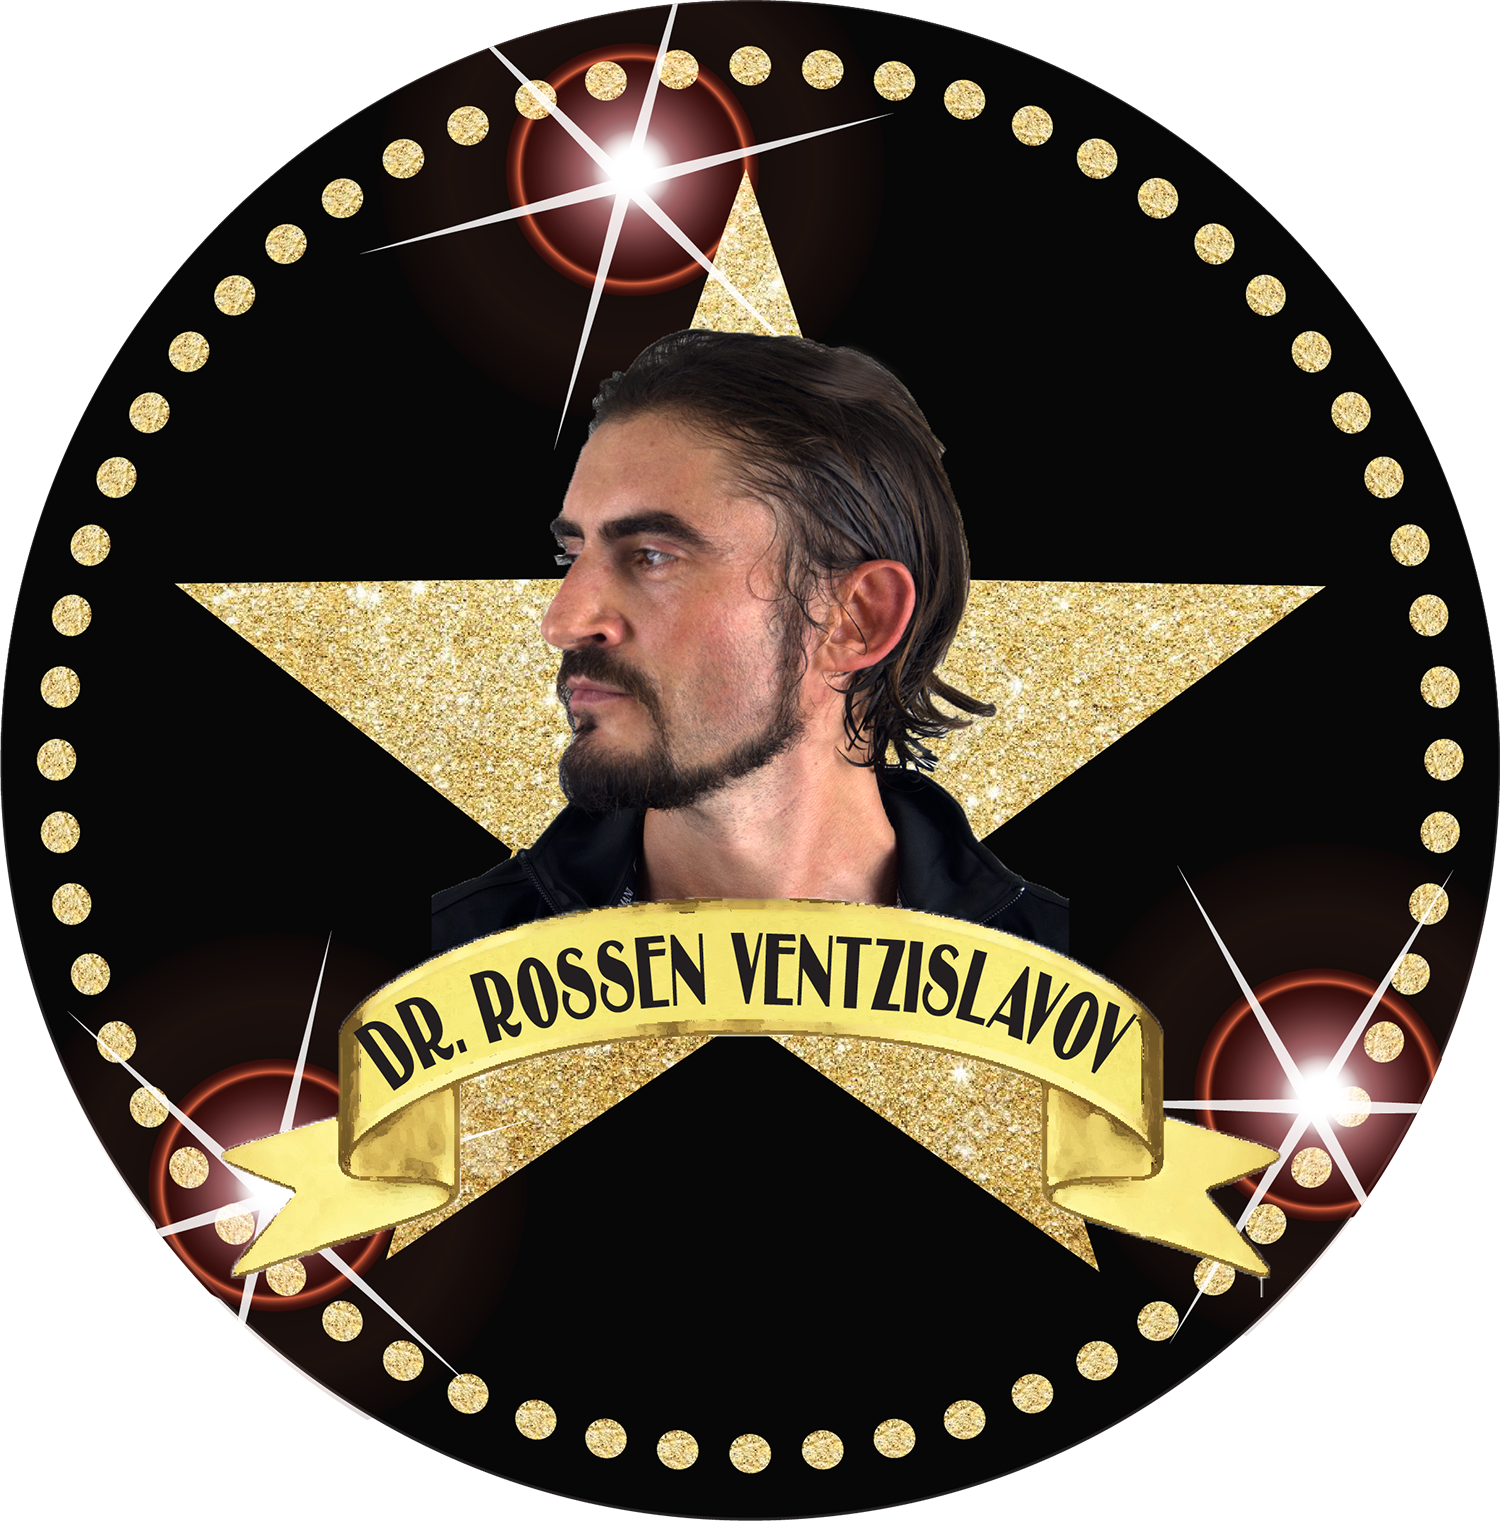 Rossen Ventzislavov is a philosopher extraordinaire, natural born critic, occasional performance artist and frontier explorer of the Los Angeles cultural wilderness.